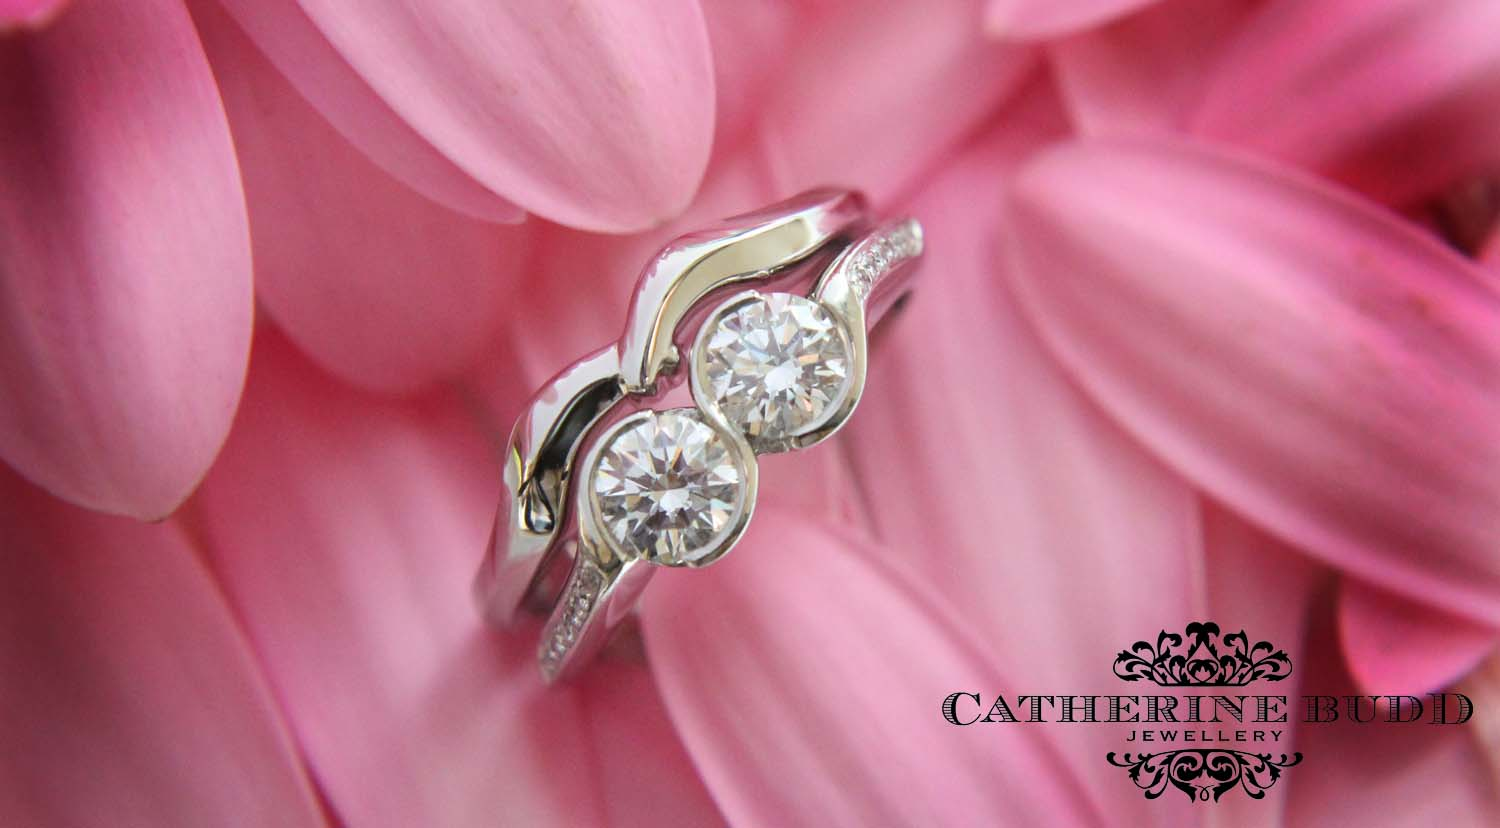 CATHERINE BUDD JEWELLERY A perfect wedding and engagement ring